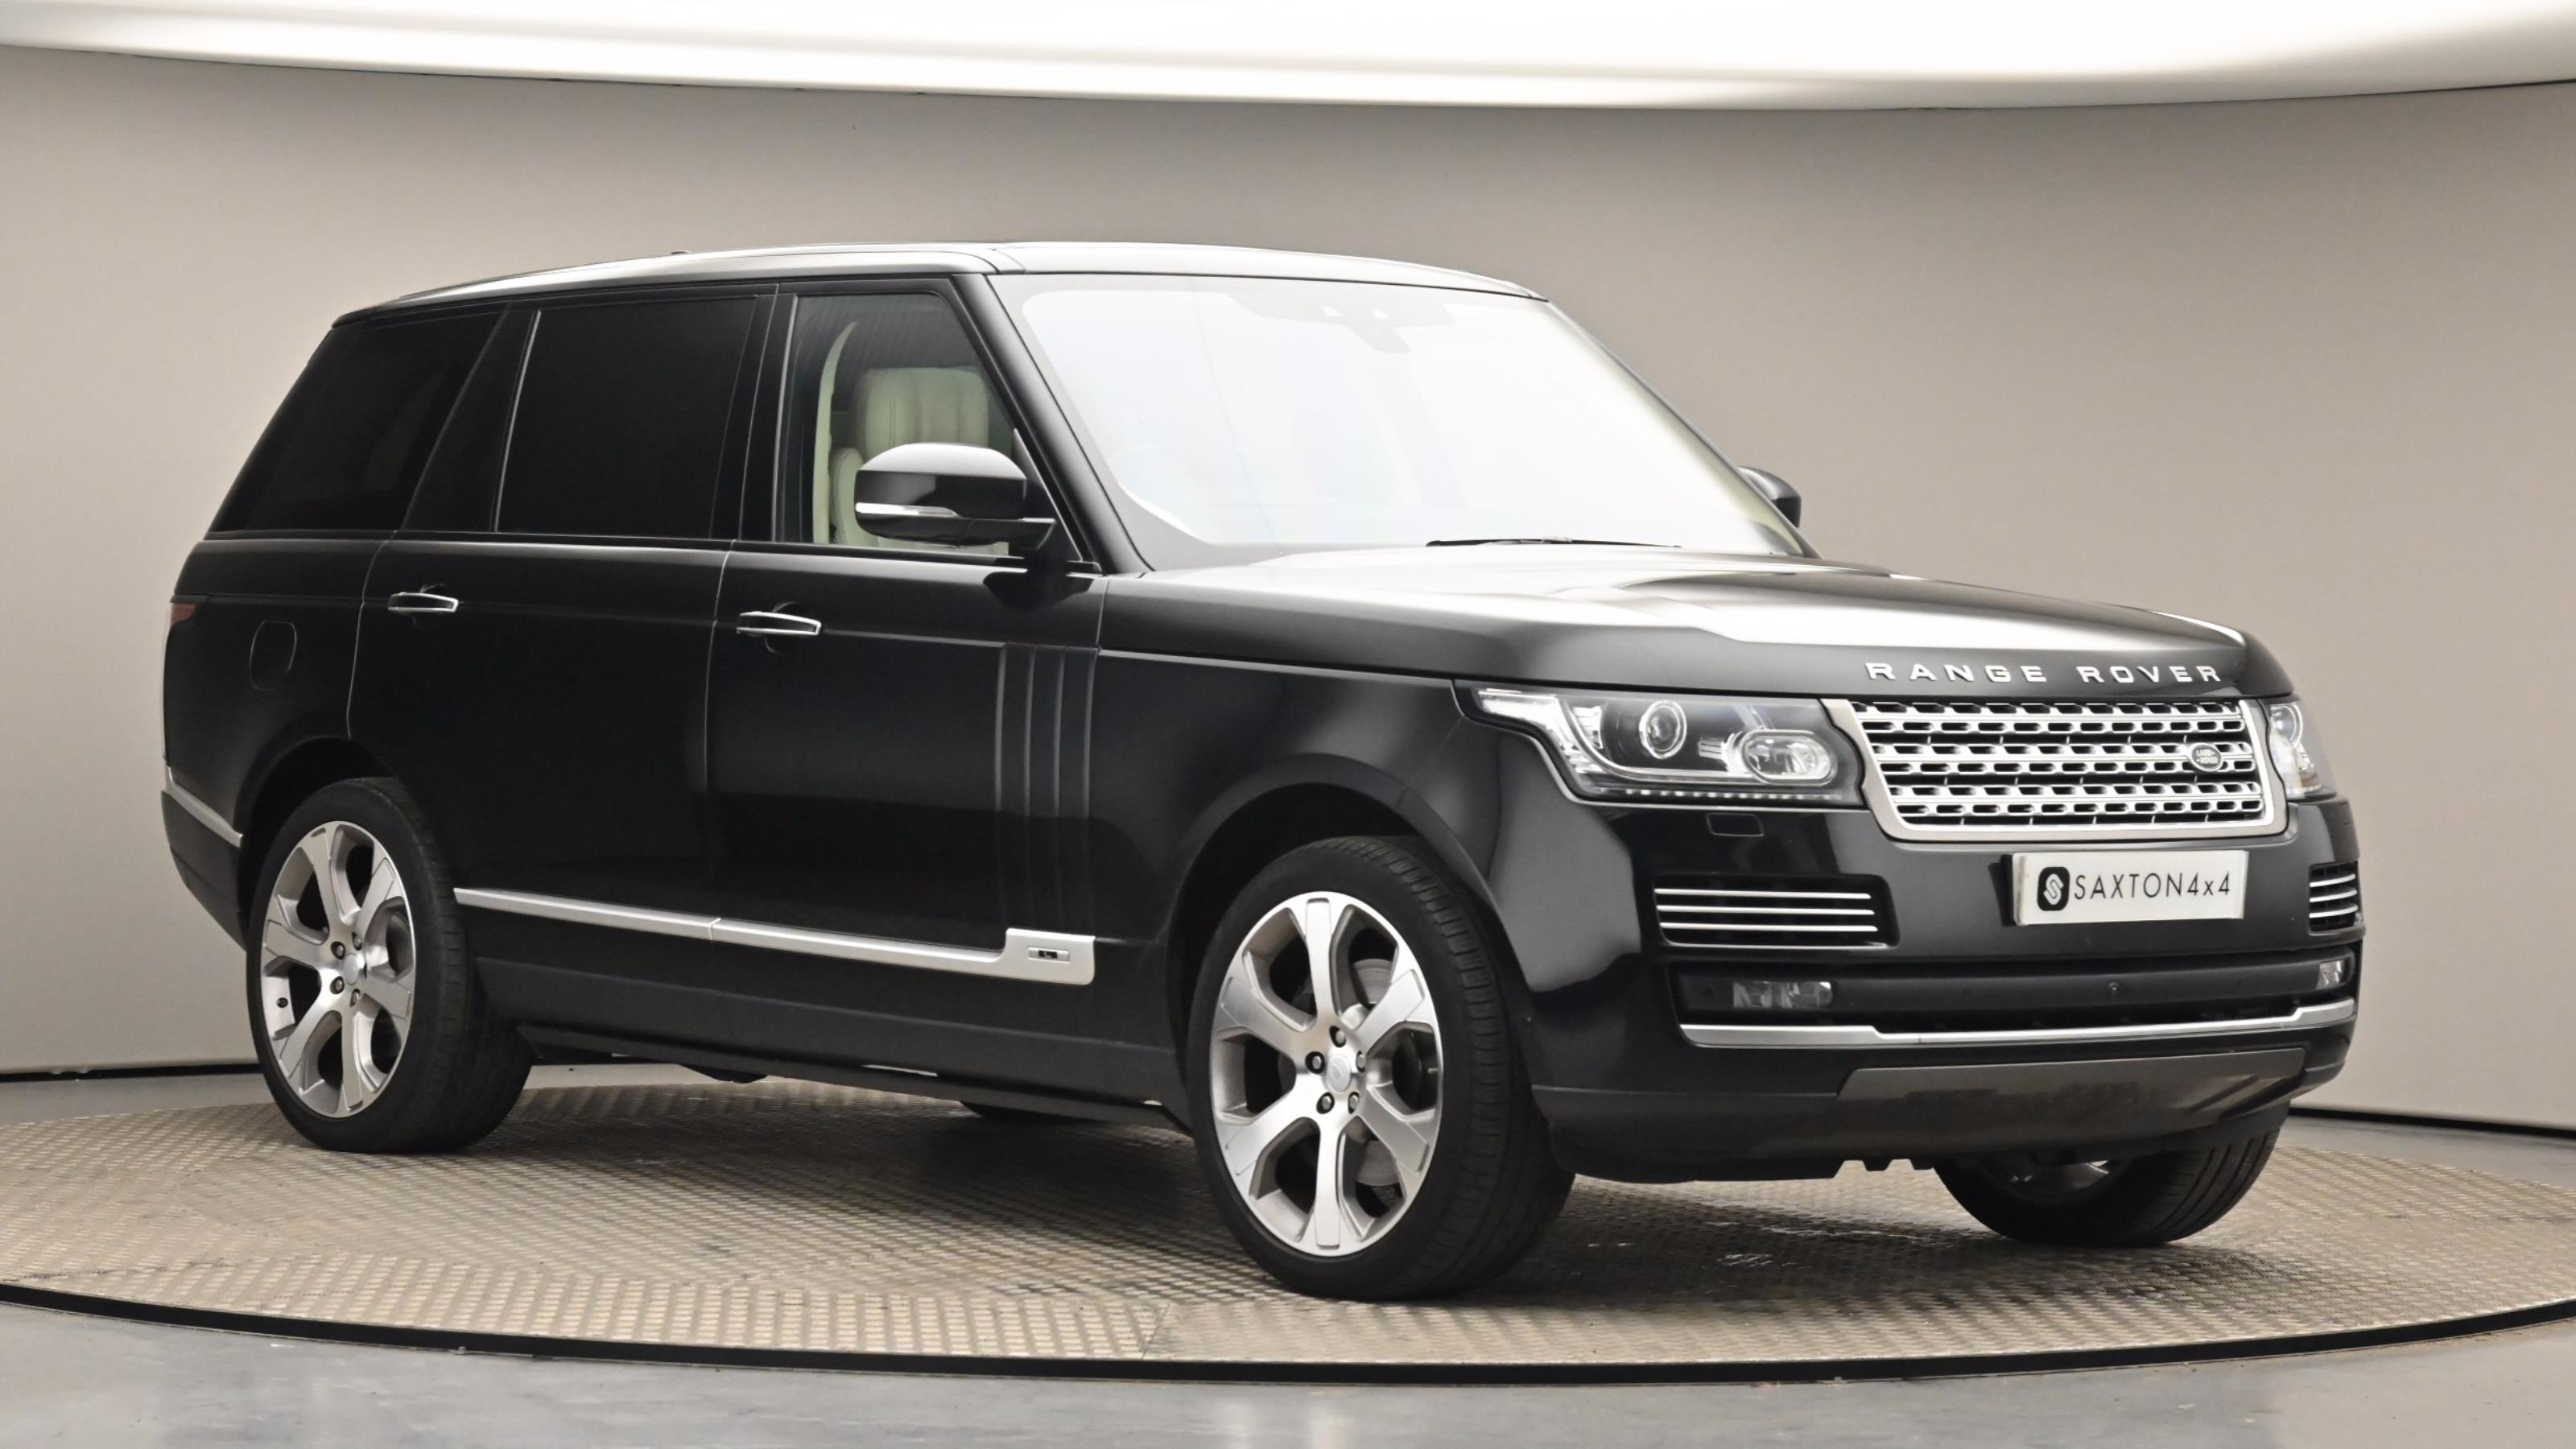 Used 2017 Land Rover RANGE ROVER 4.4 SDV8 Autobiography LWB 4dr Auto BLACK at Saxton4x4